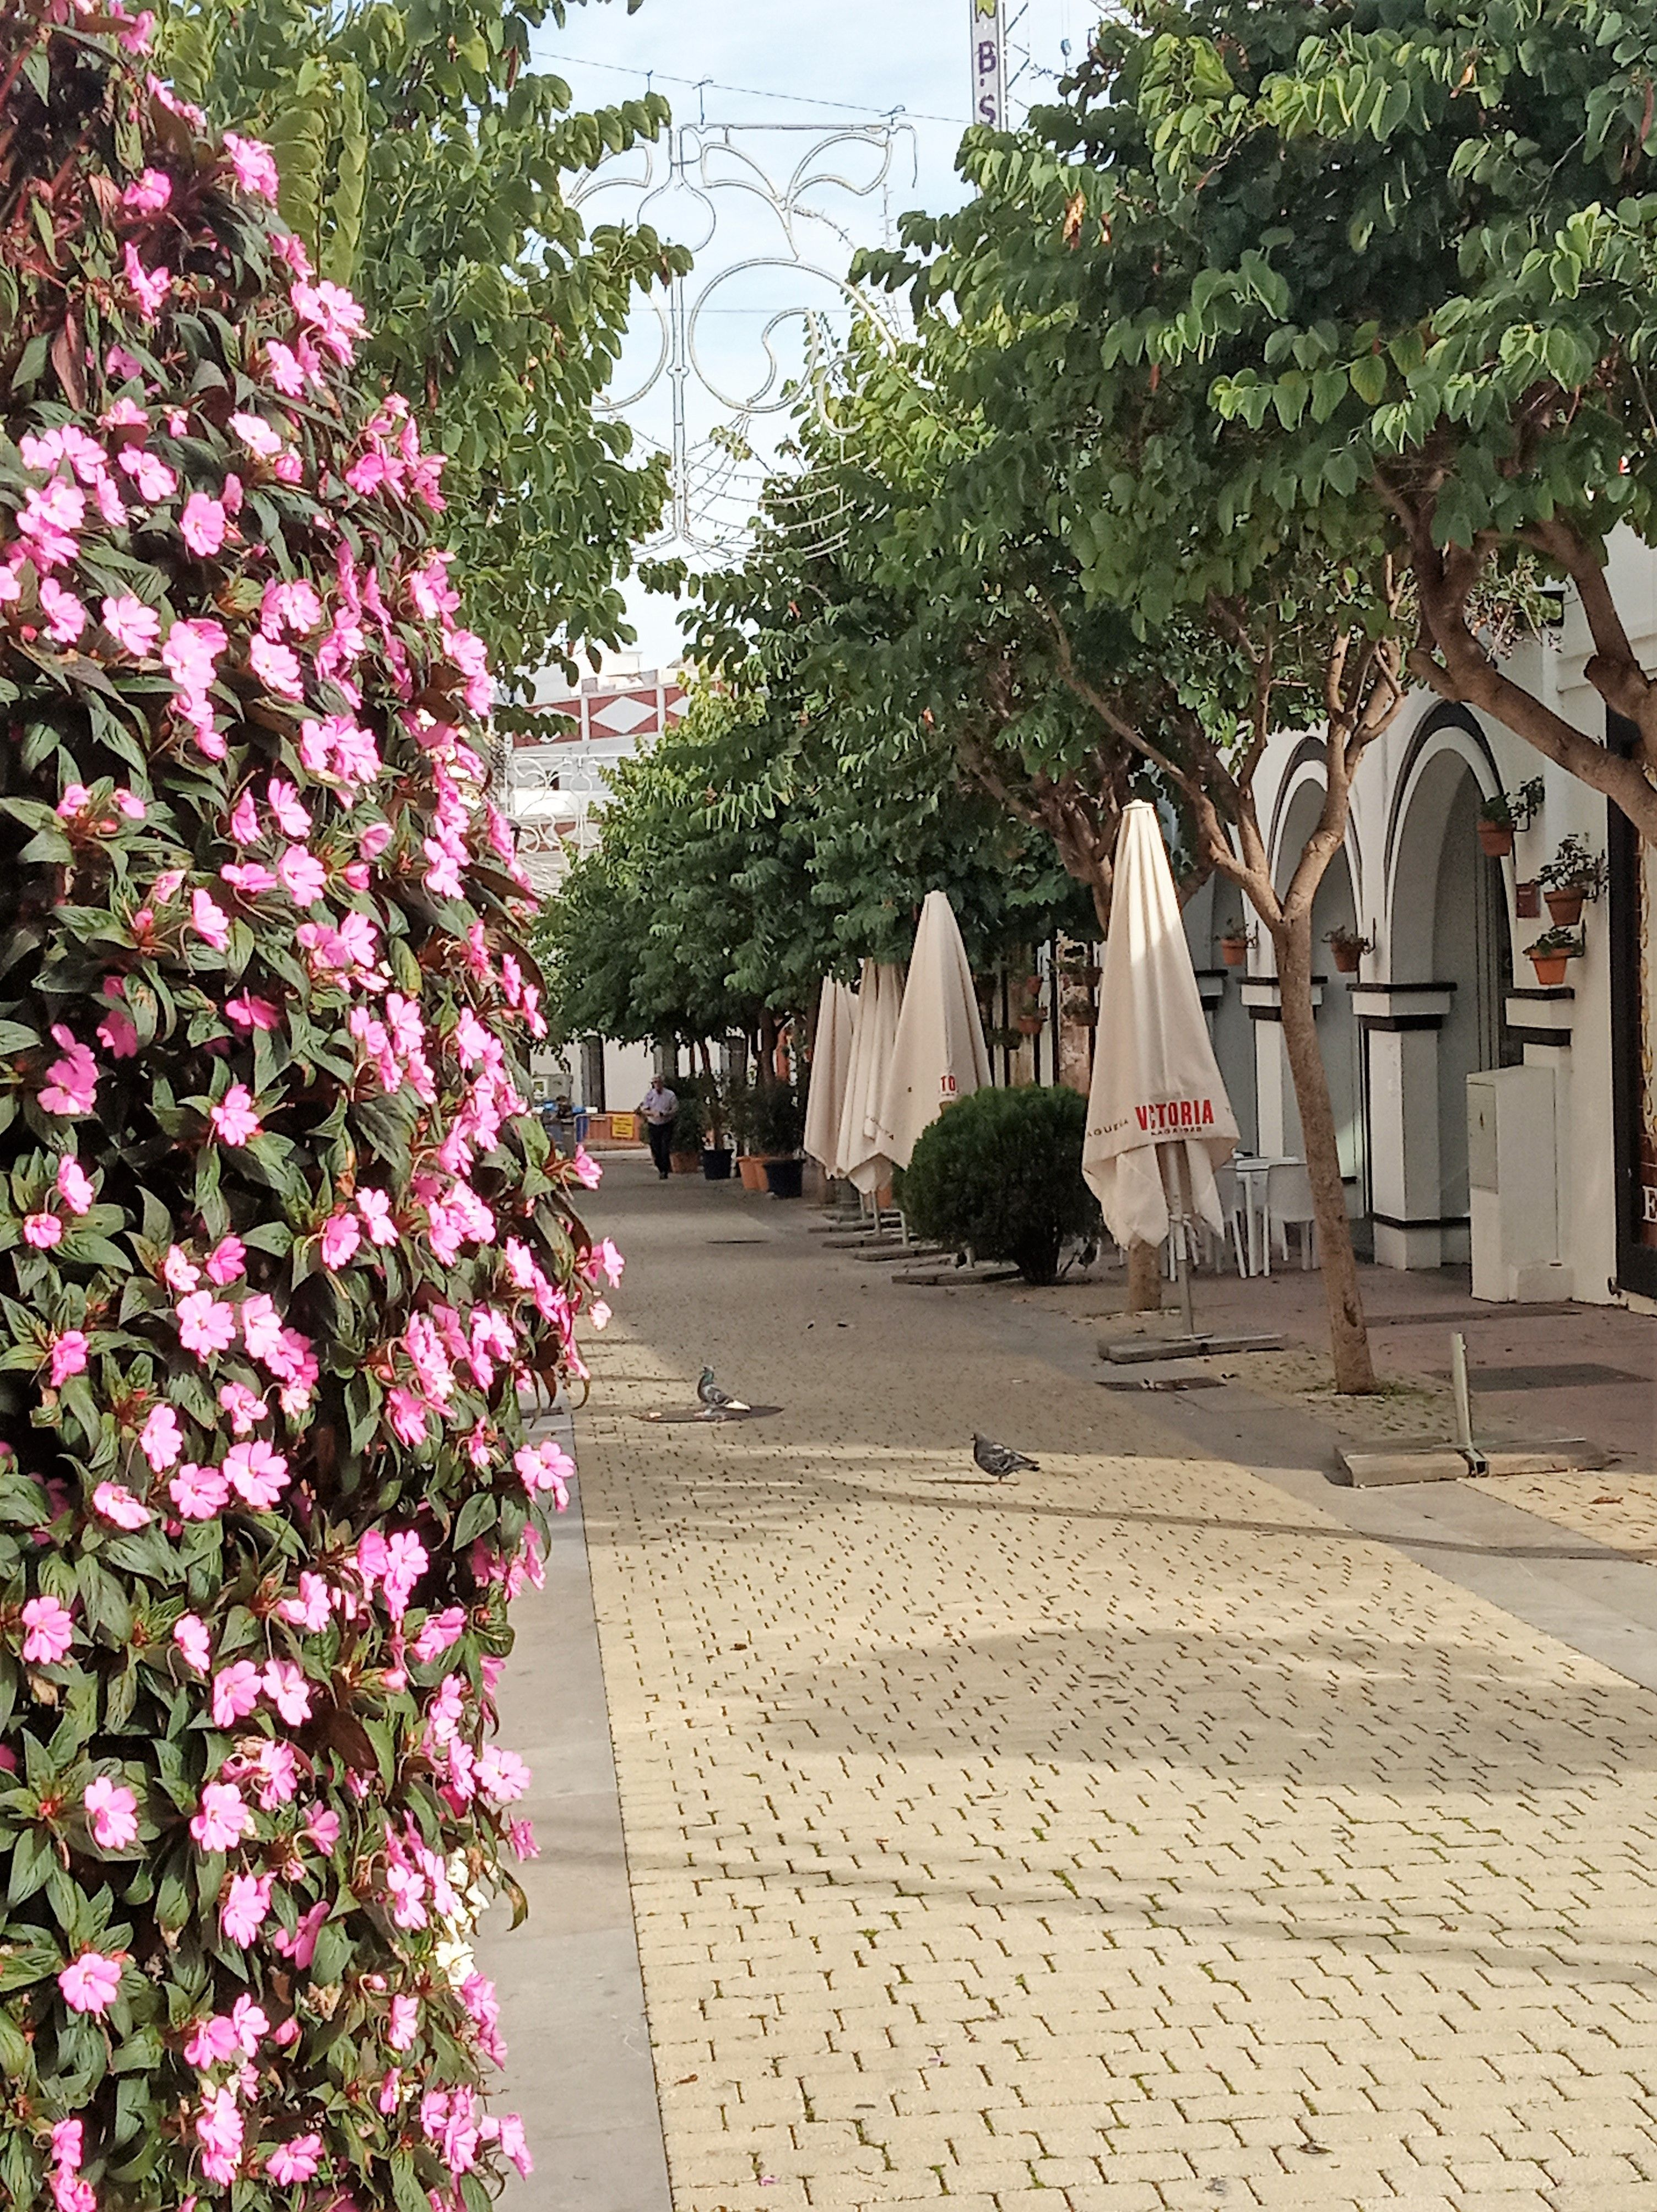 Streets of Estepona Taking a walk through the Spanish coastal town of Estepona, you will come acros